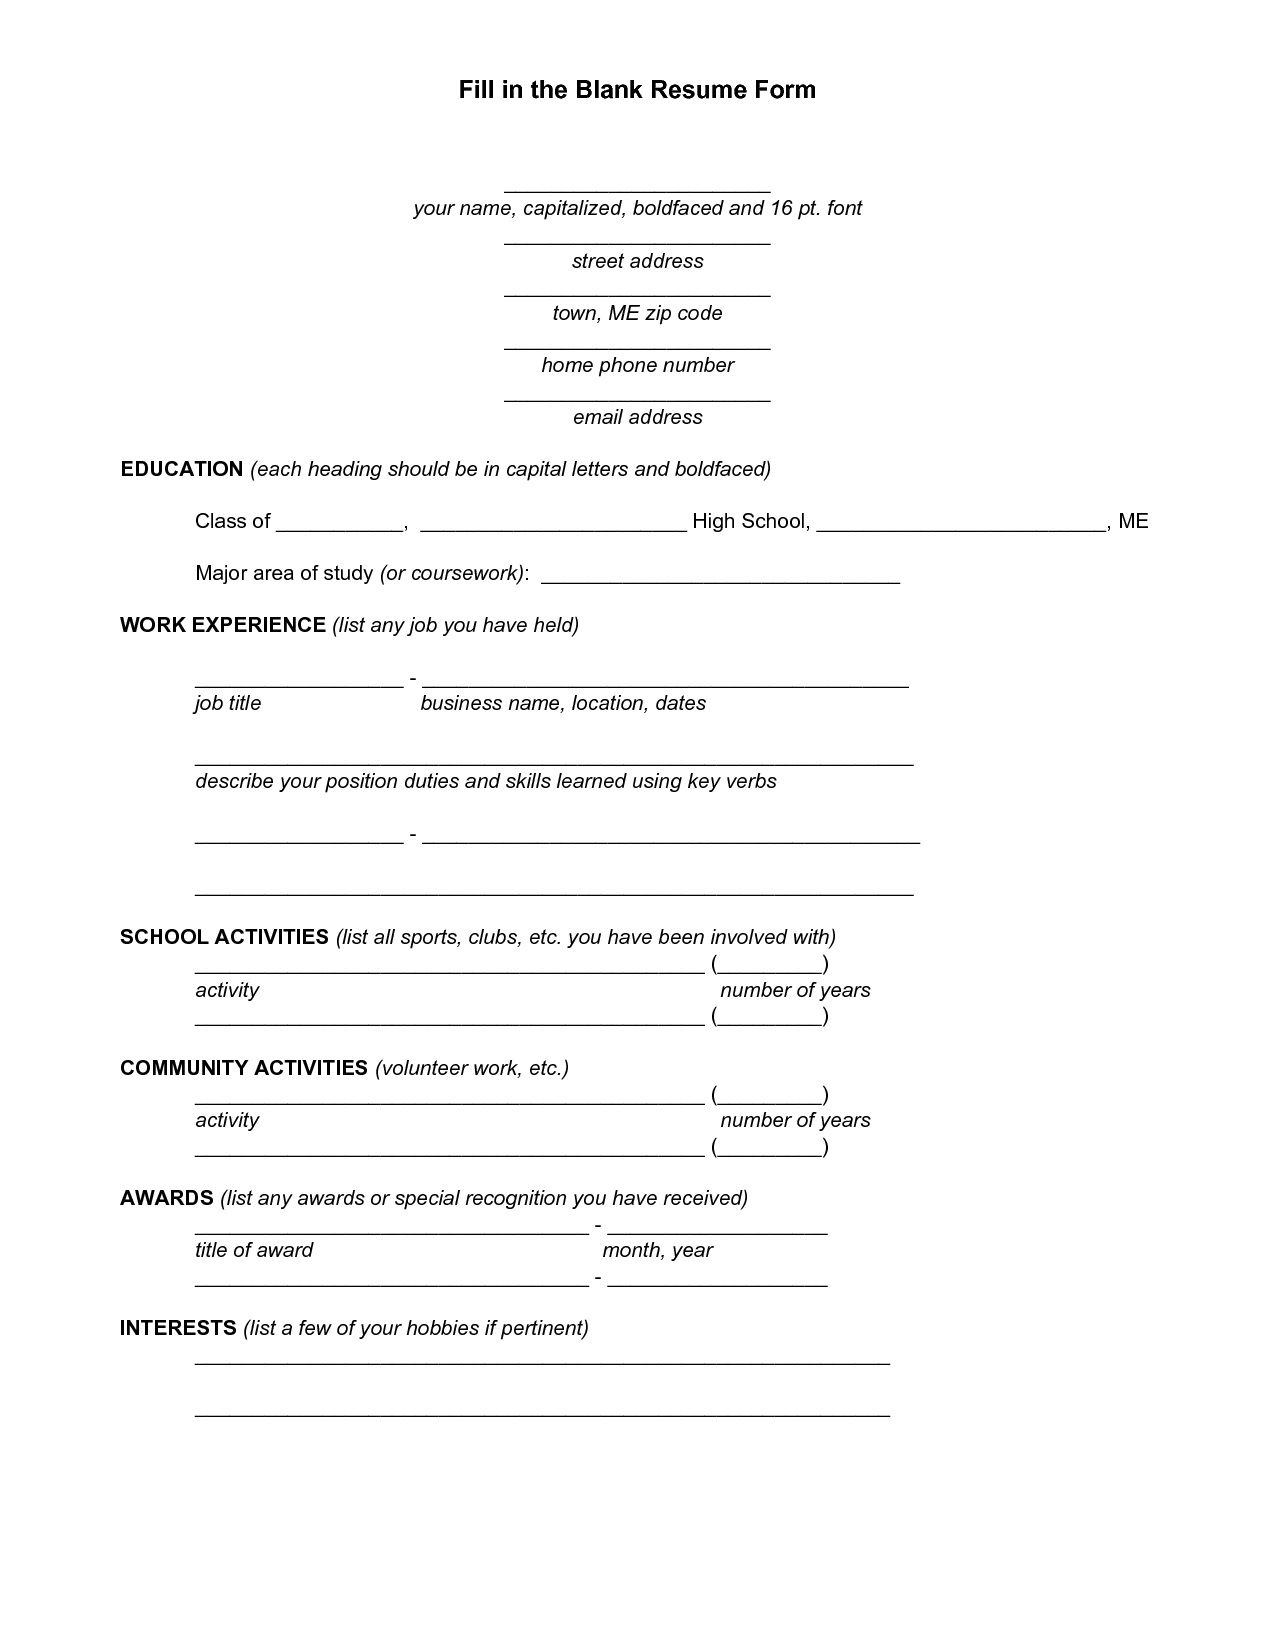 Blank Job Resume Form We Provide As Reference To Make